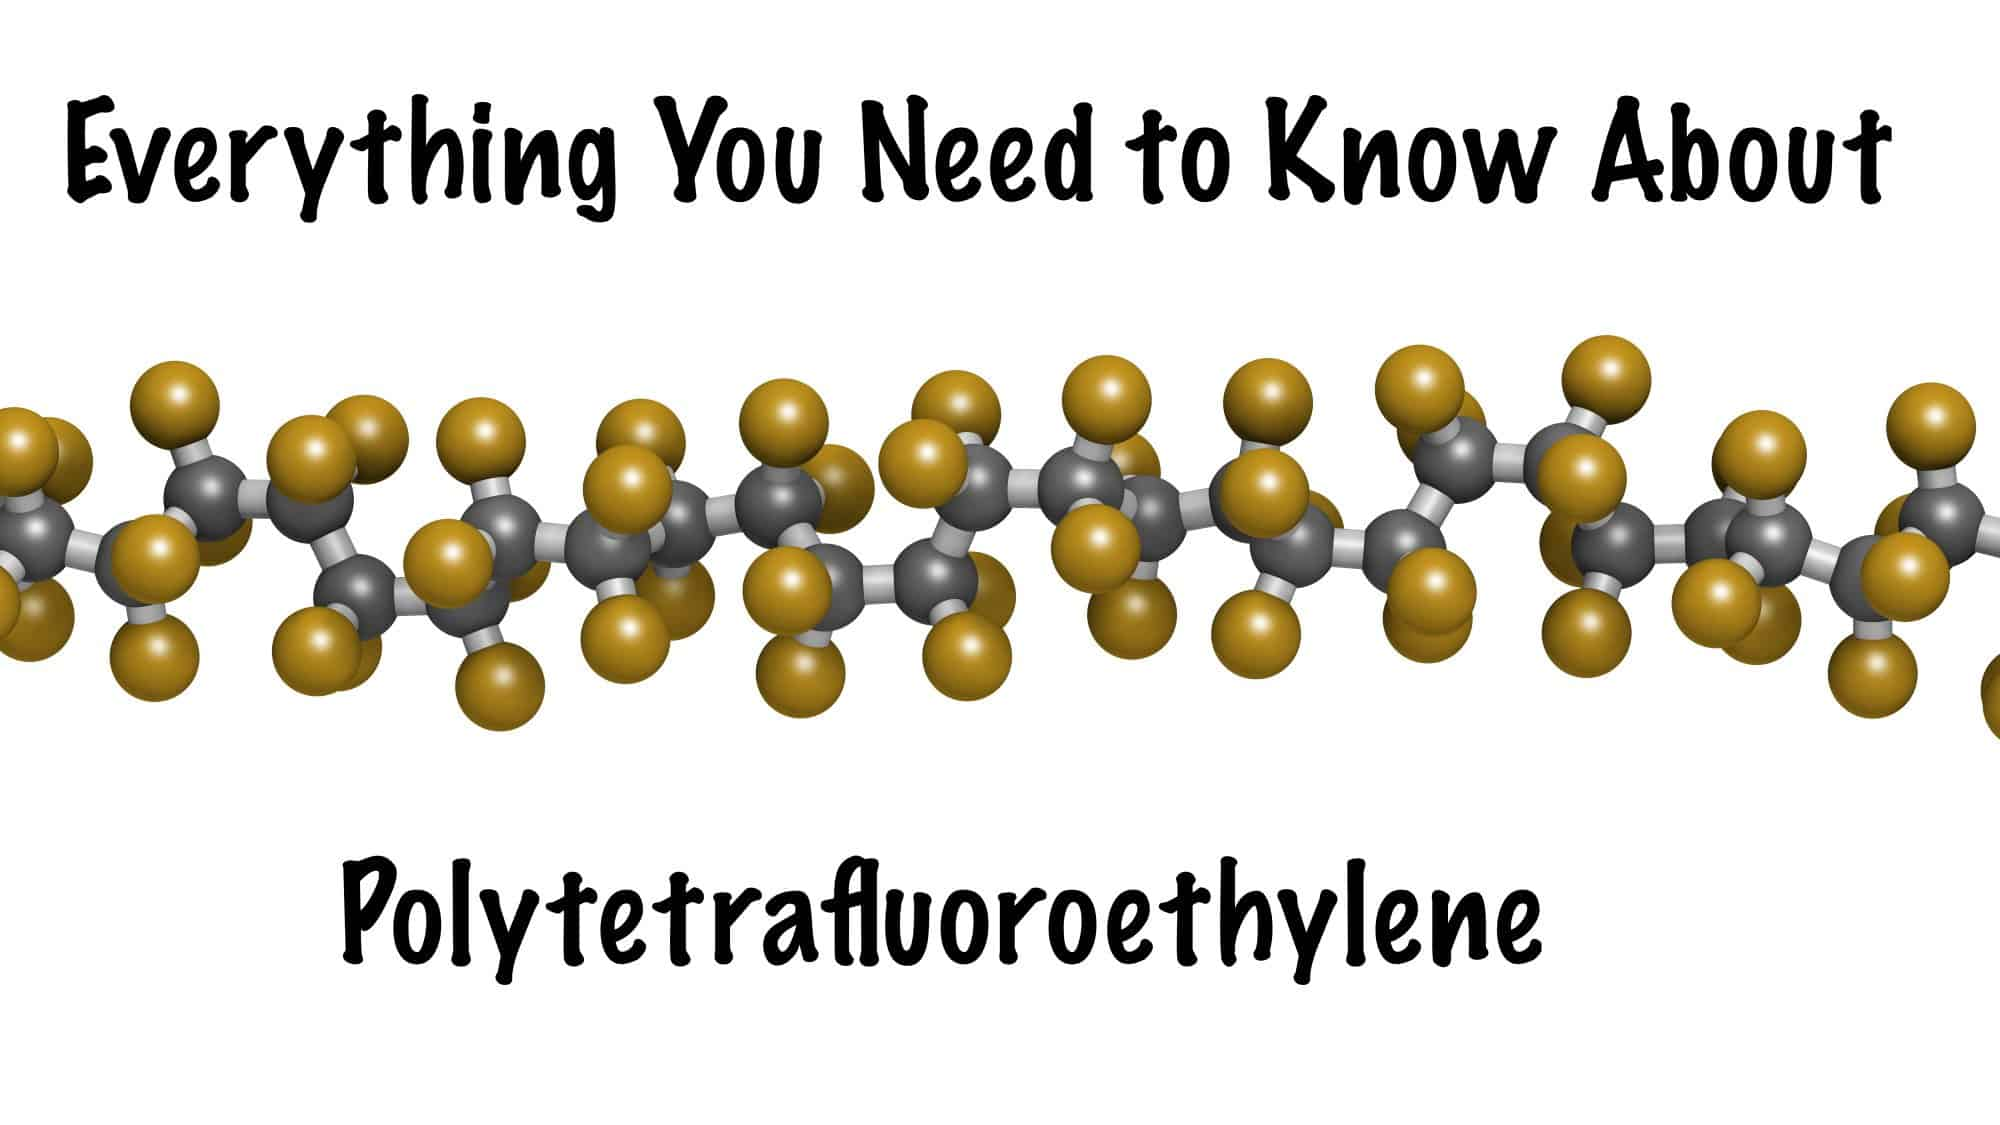 Everything You Need to Know About Polytetrafluoroethylene Industrial Coating